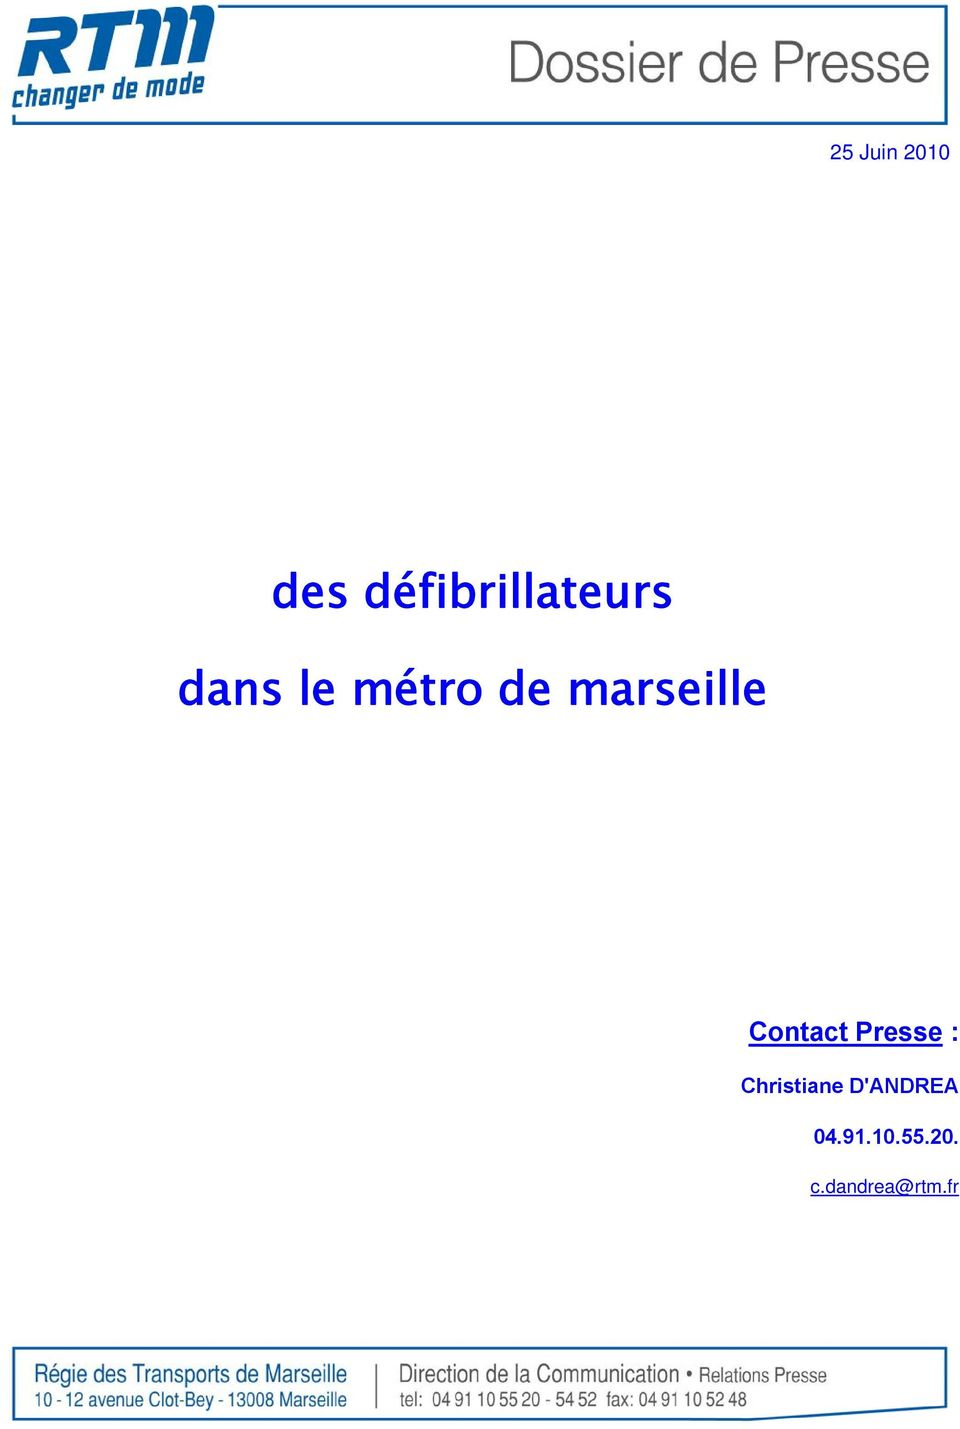 Contact Presse : Christiane